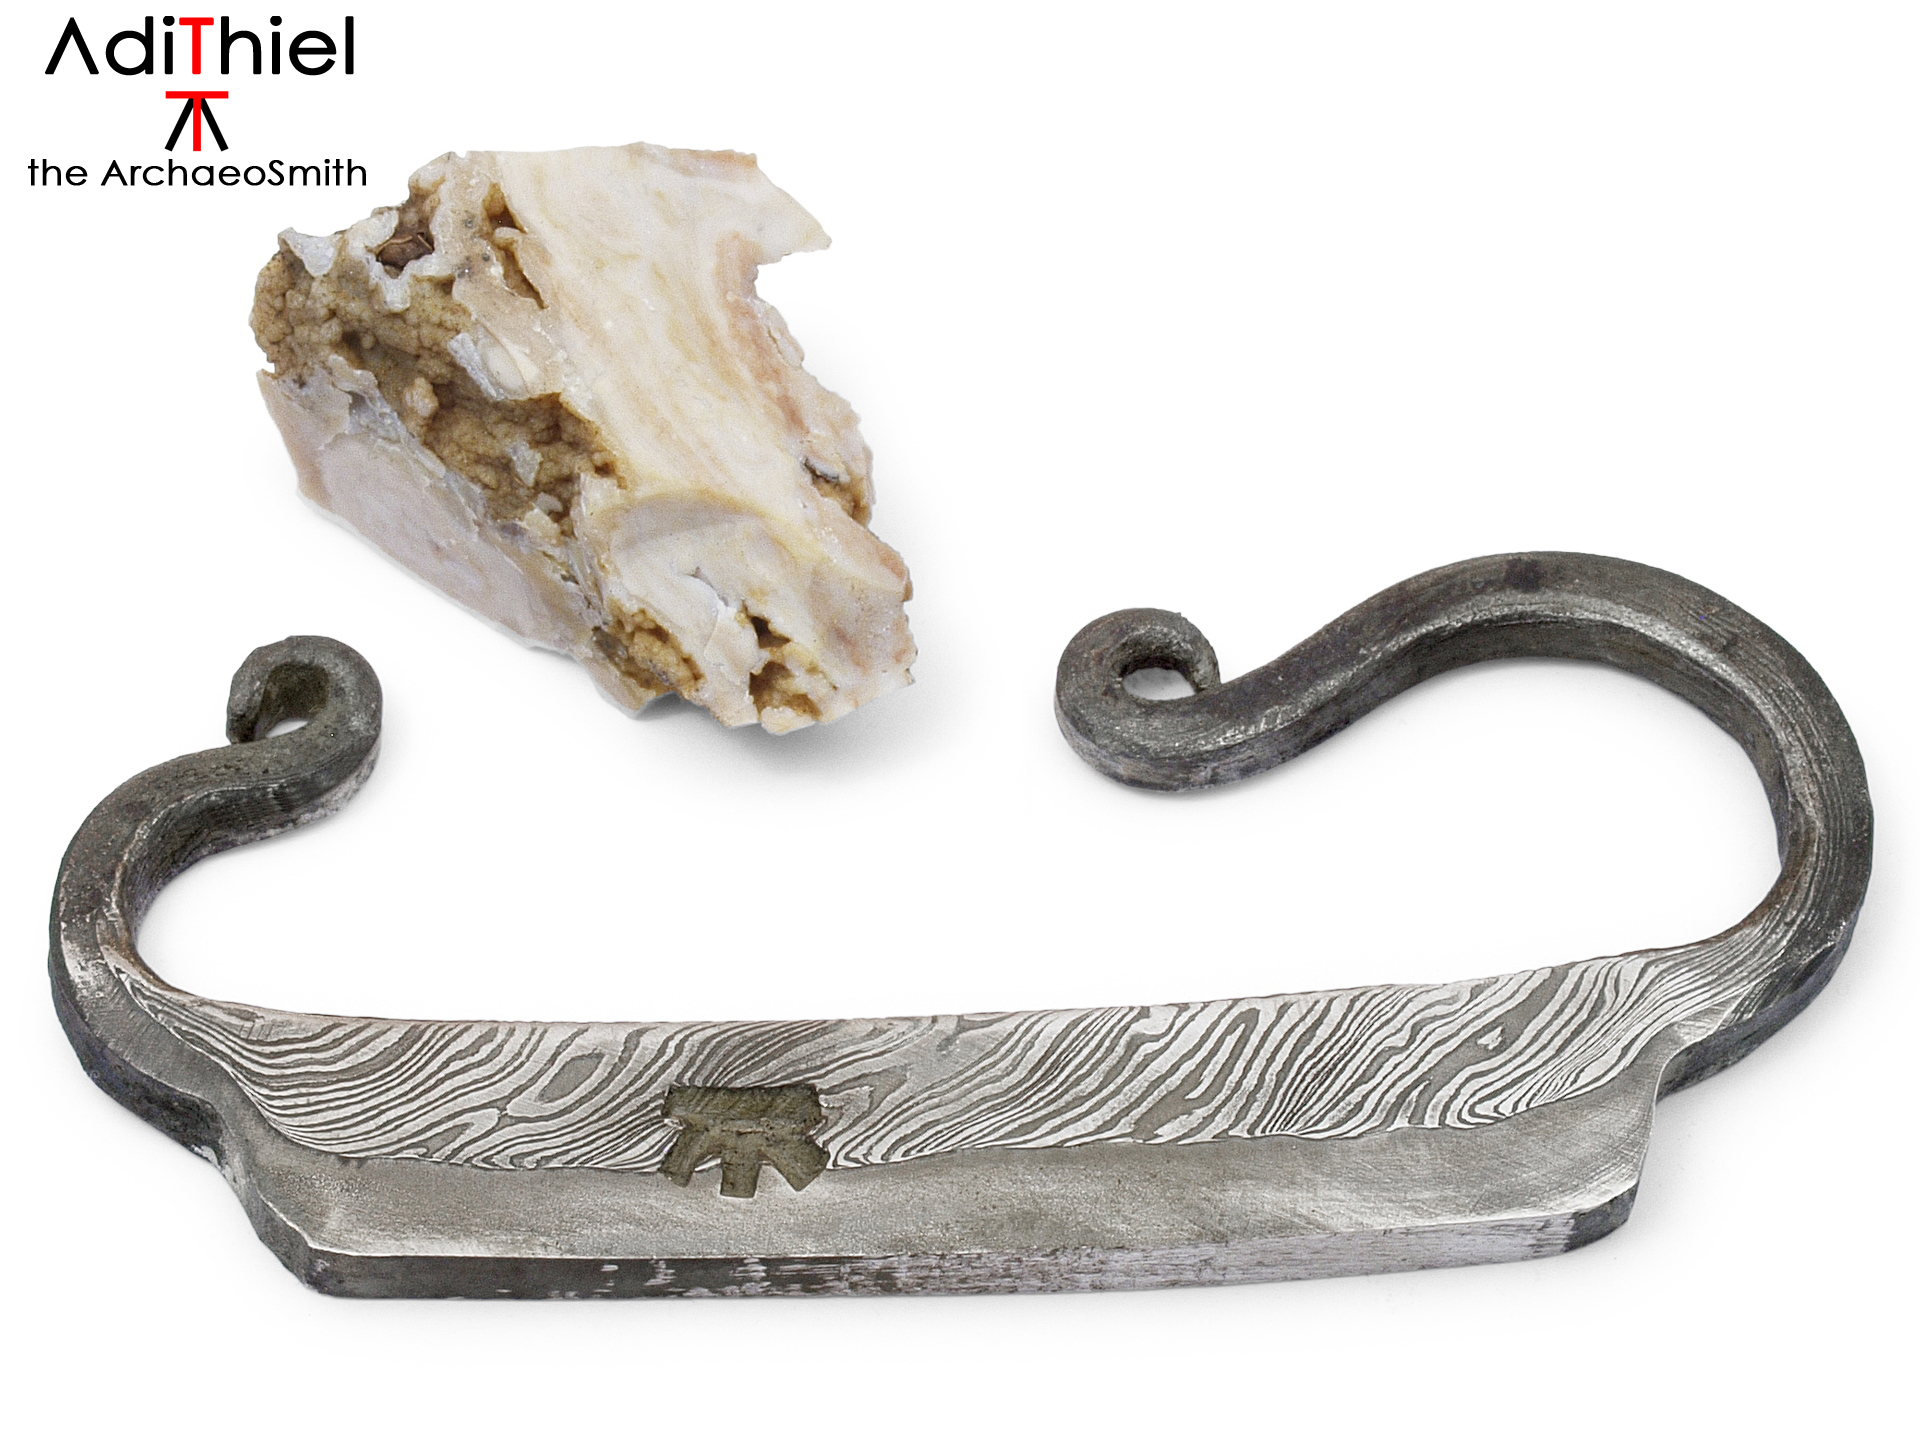 Damascus Steel Fire Striker and Flint Stone, FIRE STARTER